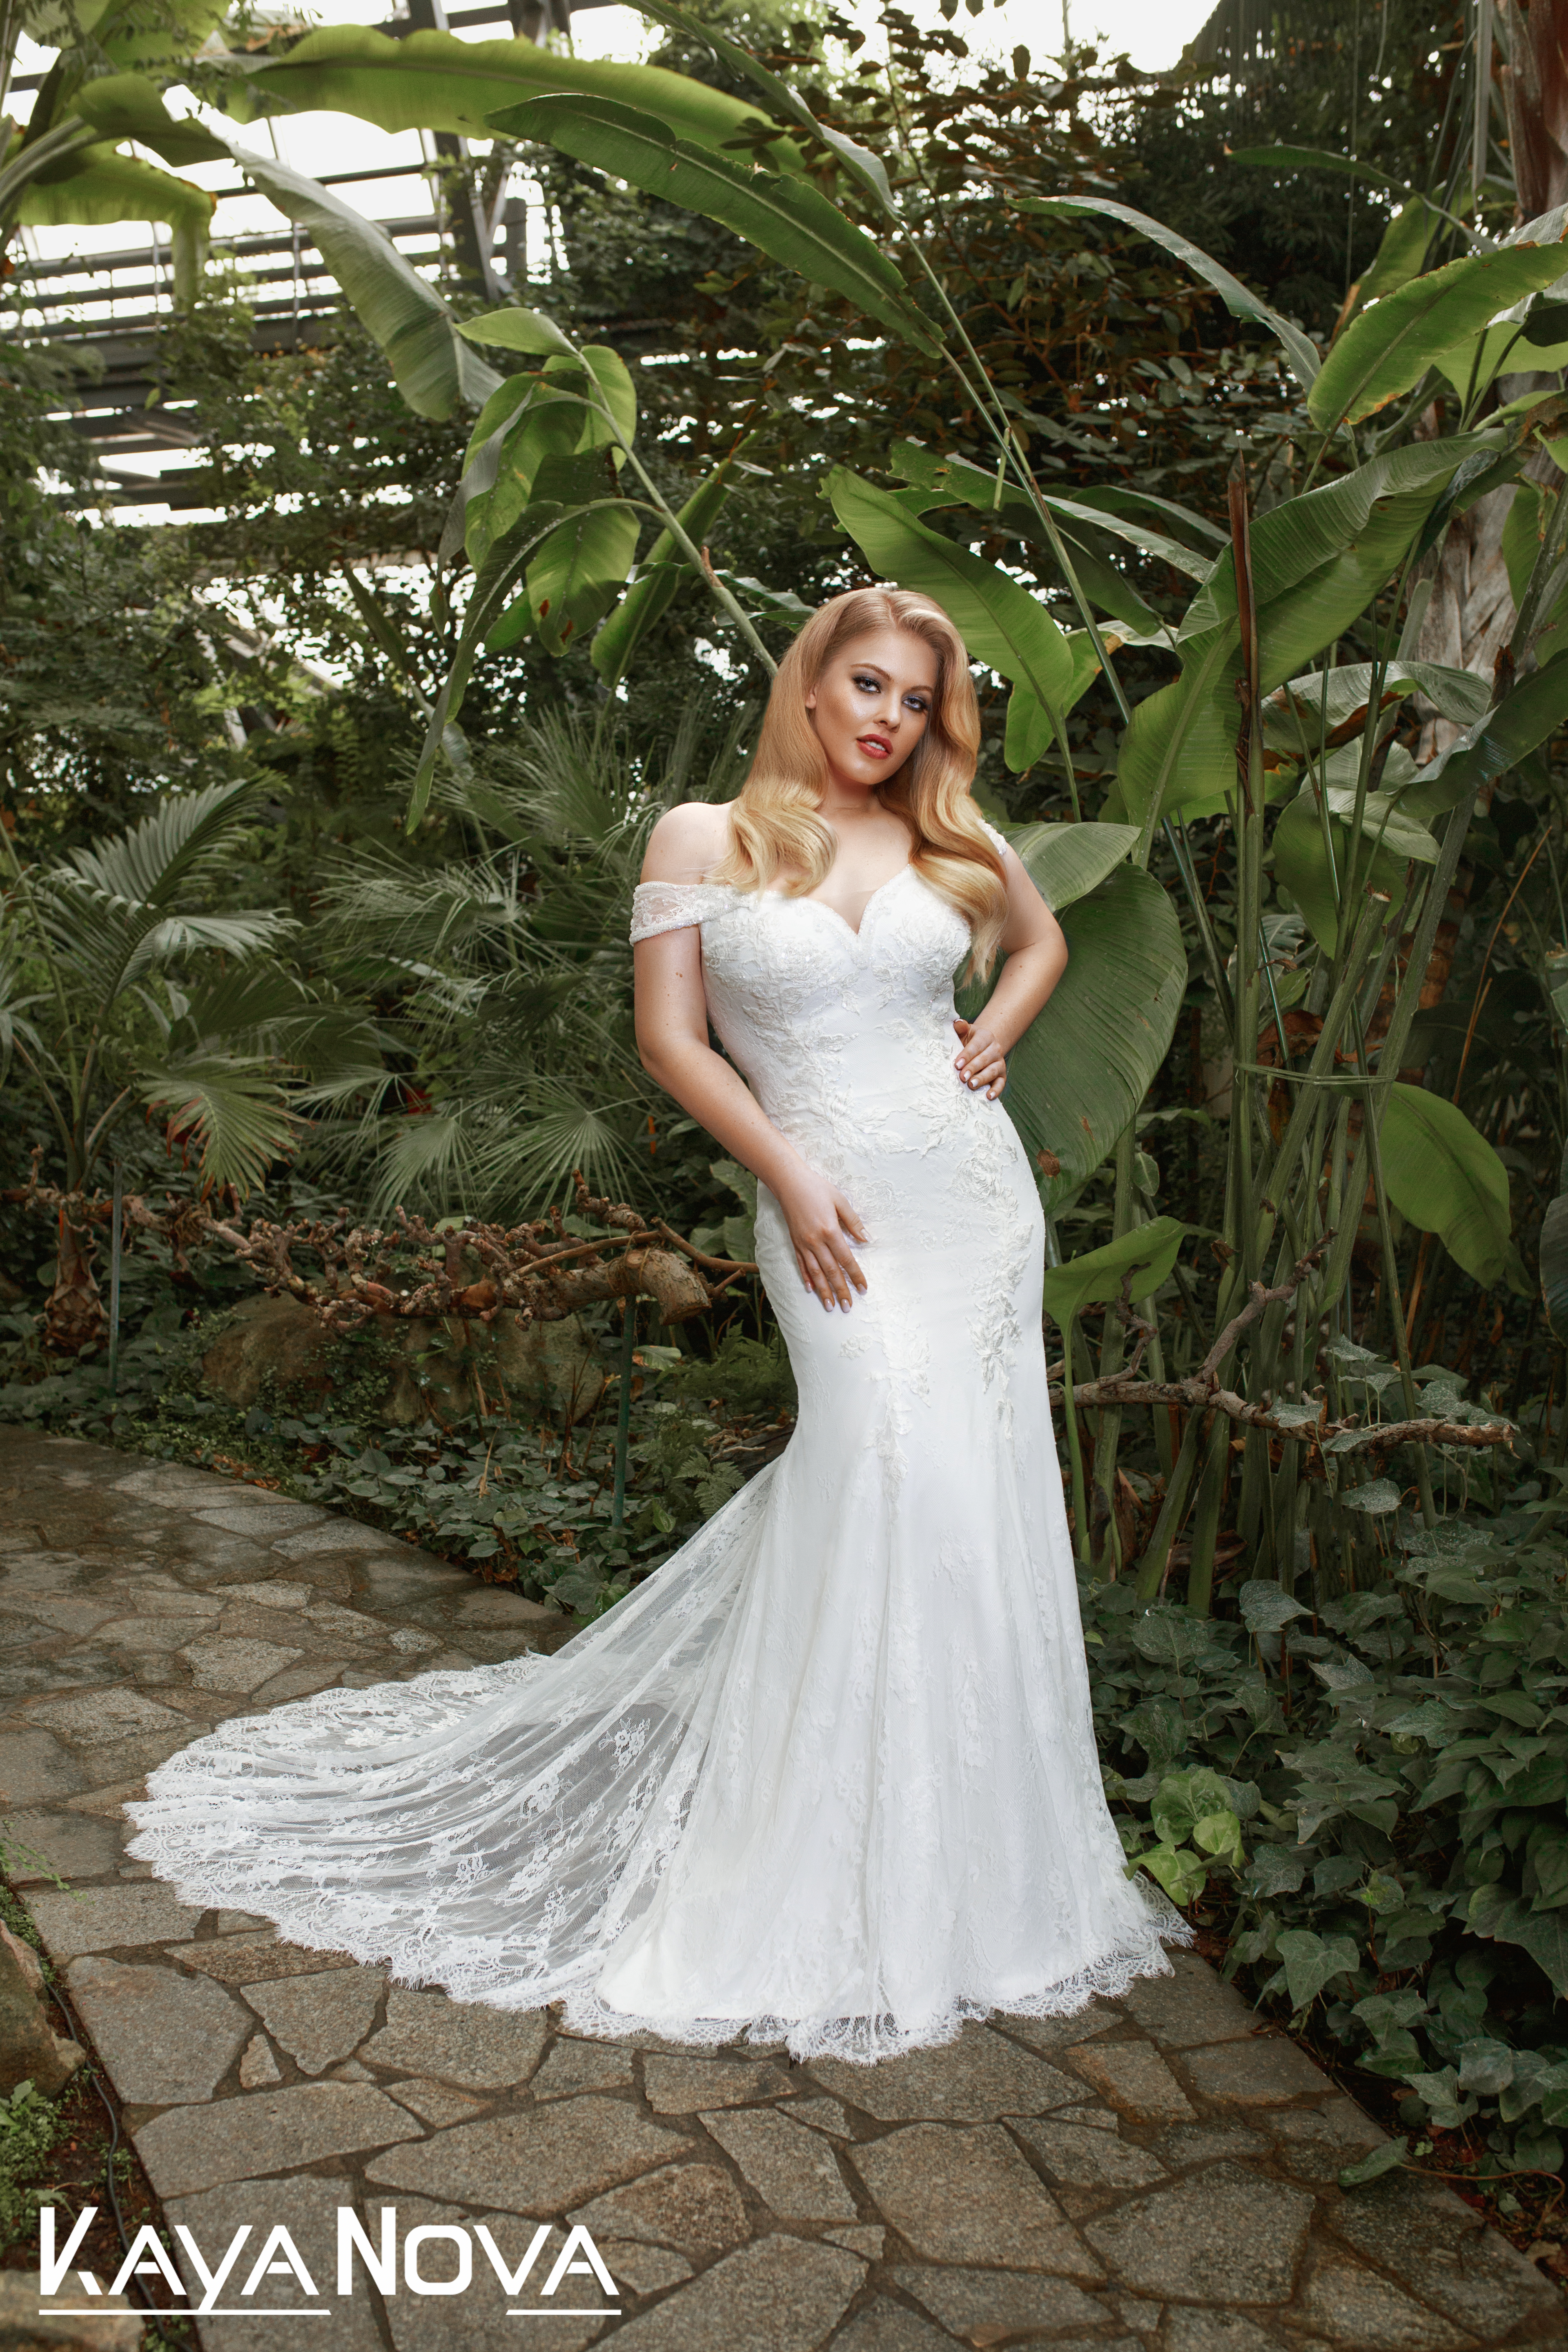 https://kayawedding.com/images/stories/virtuemart/product/kris1.jpg